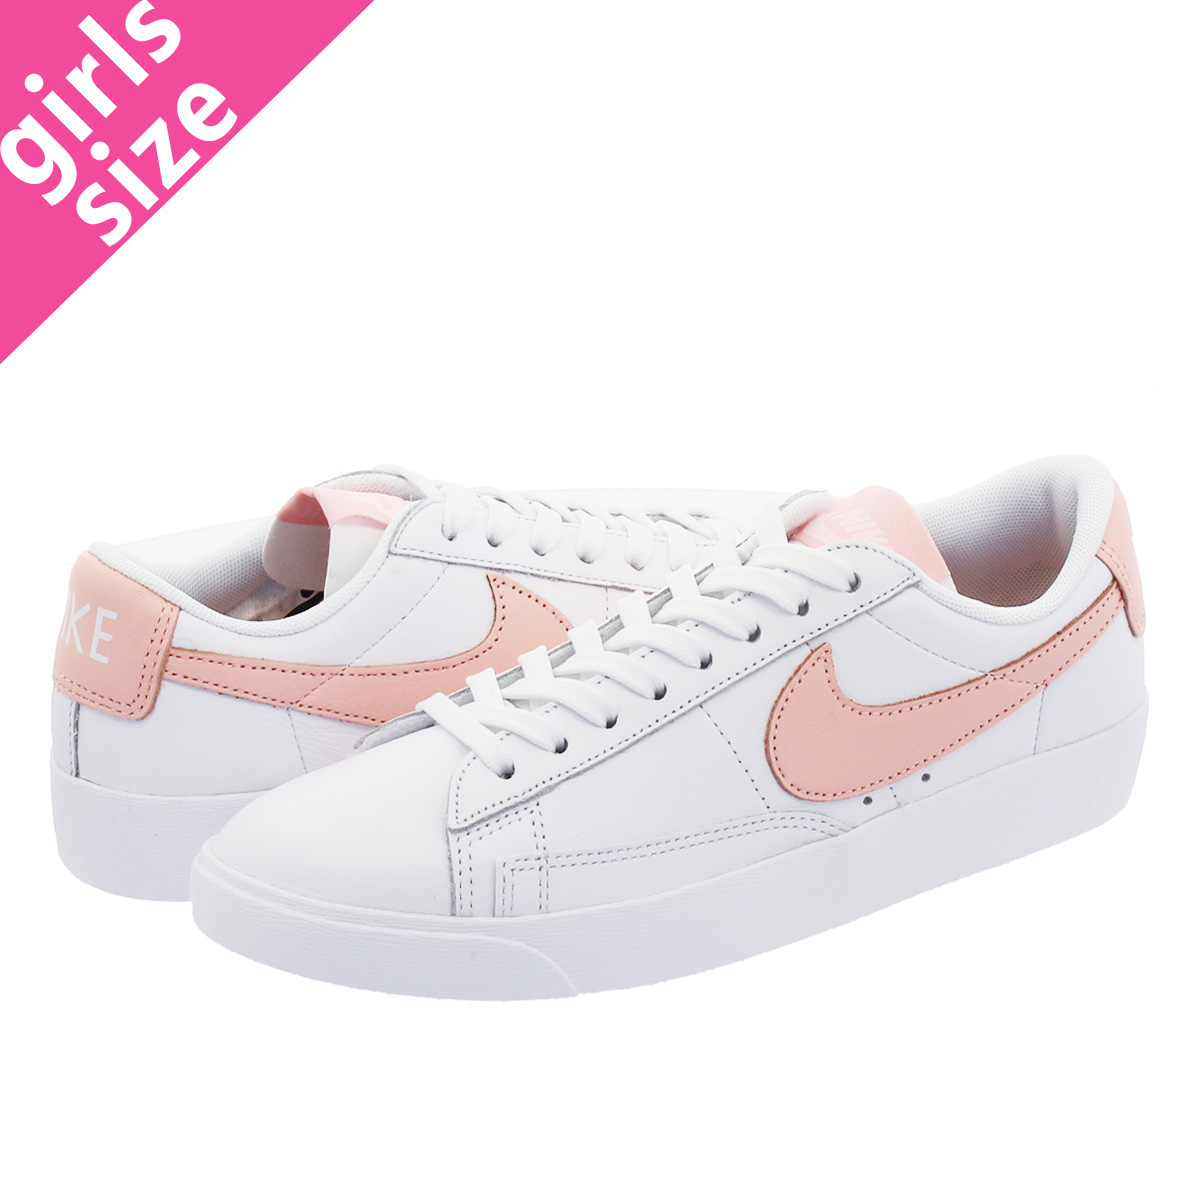 new product 88e3a 3a956 NIKE WMNS BLAZER LOW LE Nike women blazer low LE WHITE STORM PINK WHITE ...